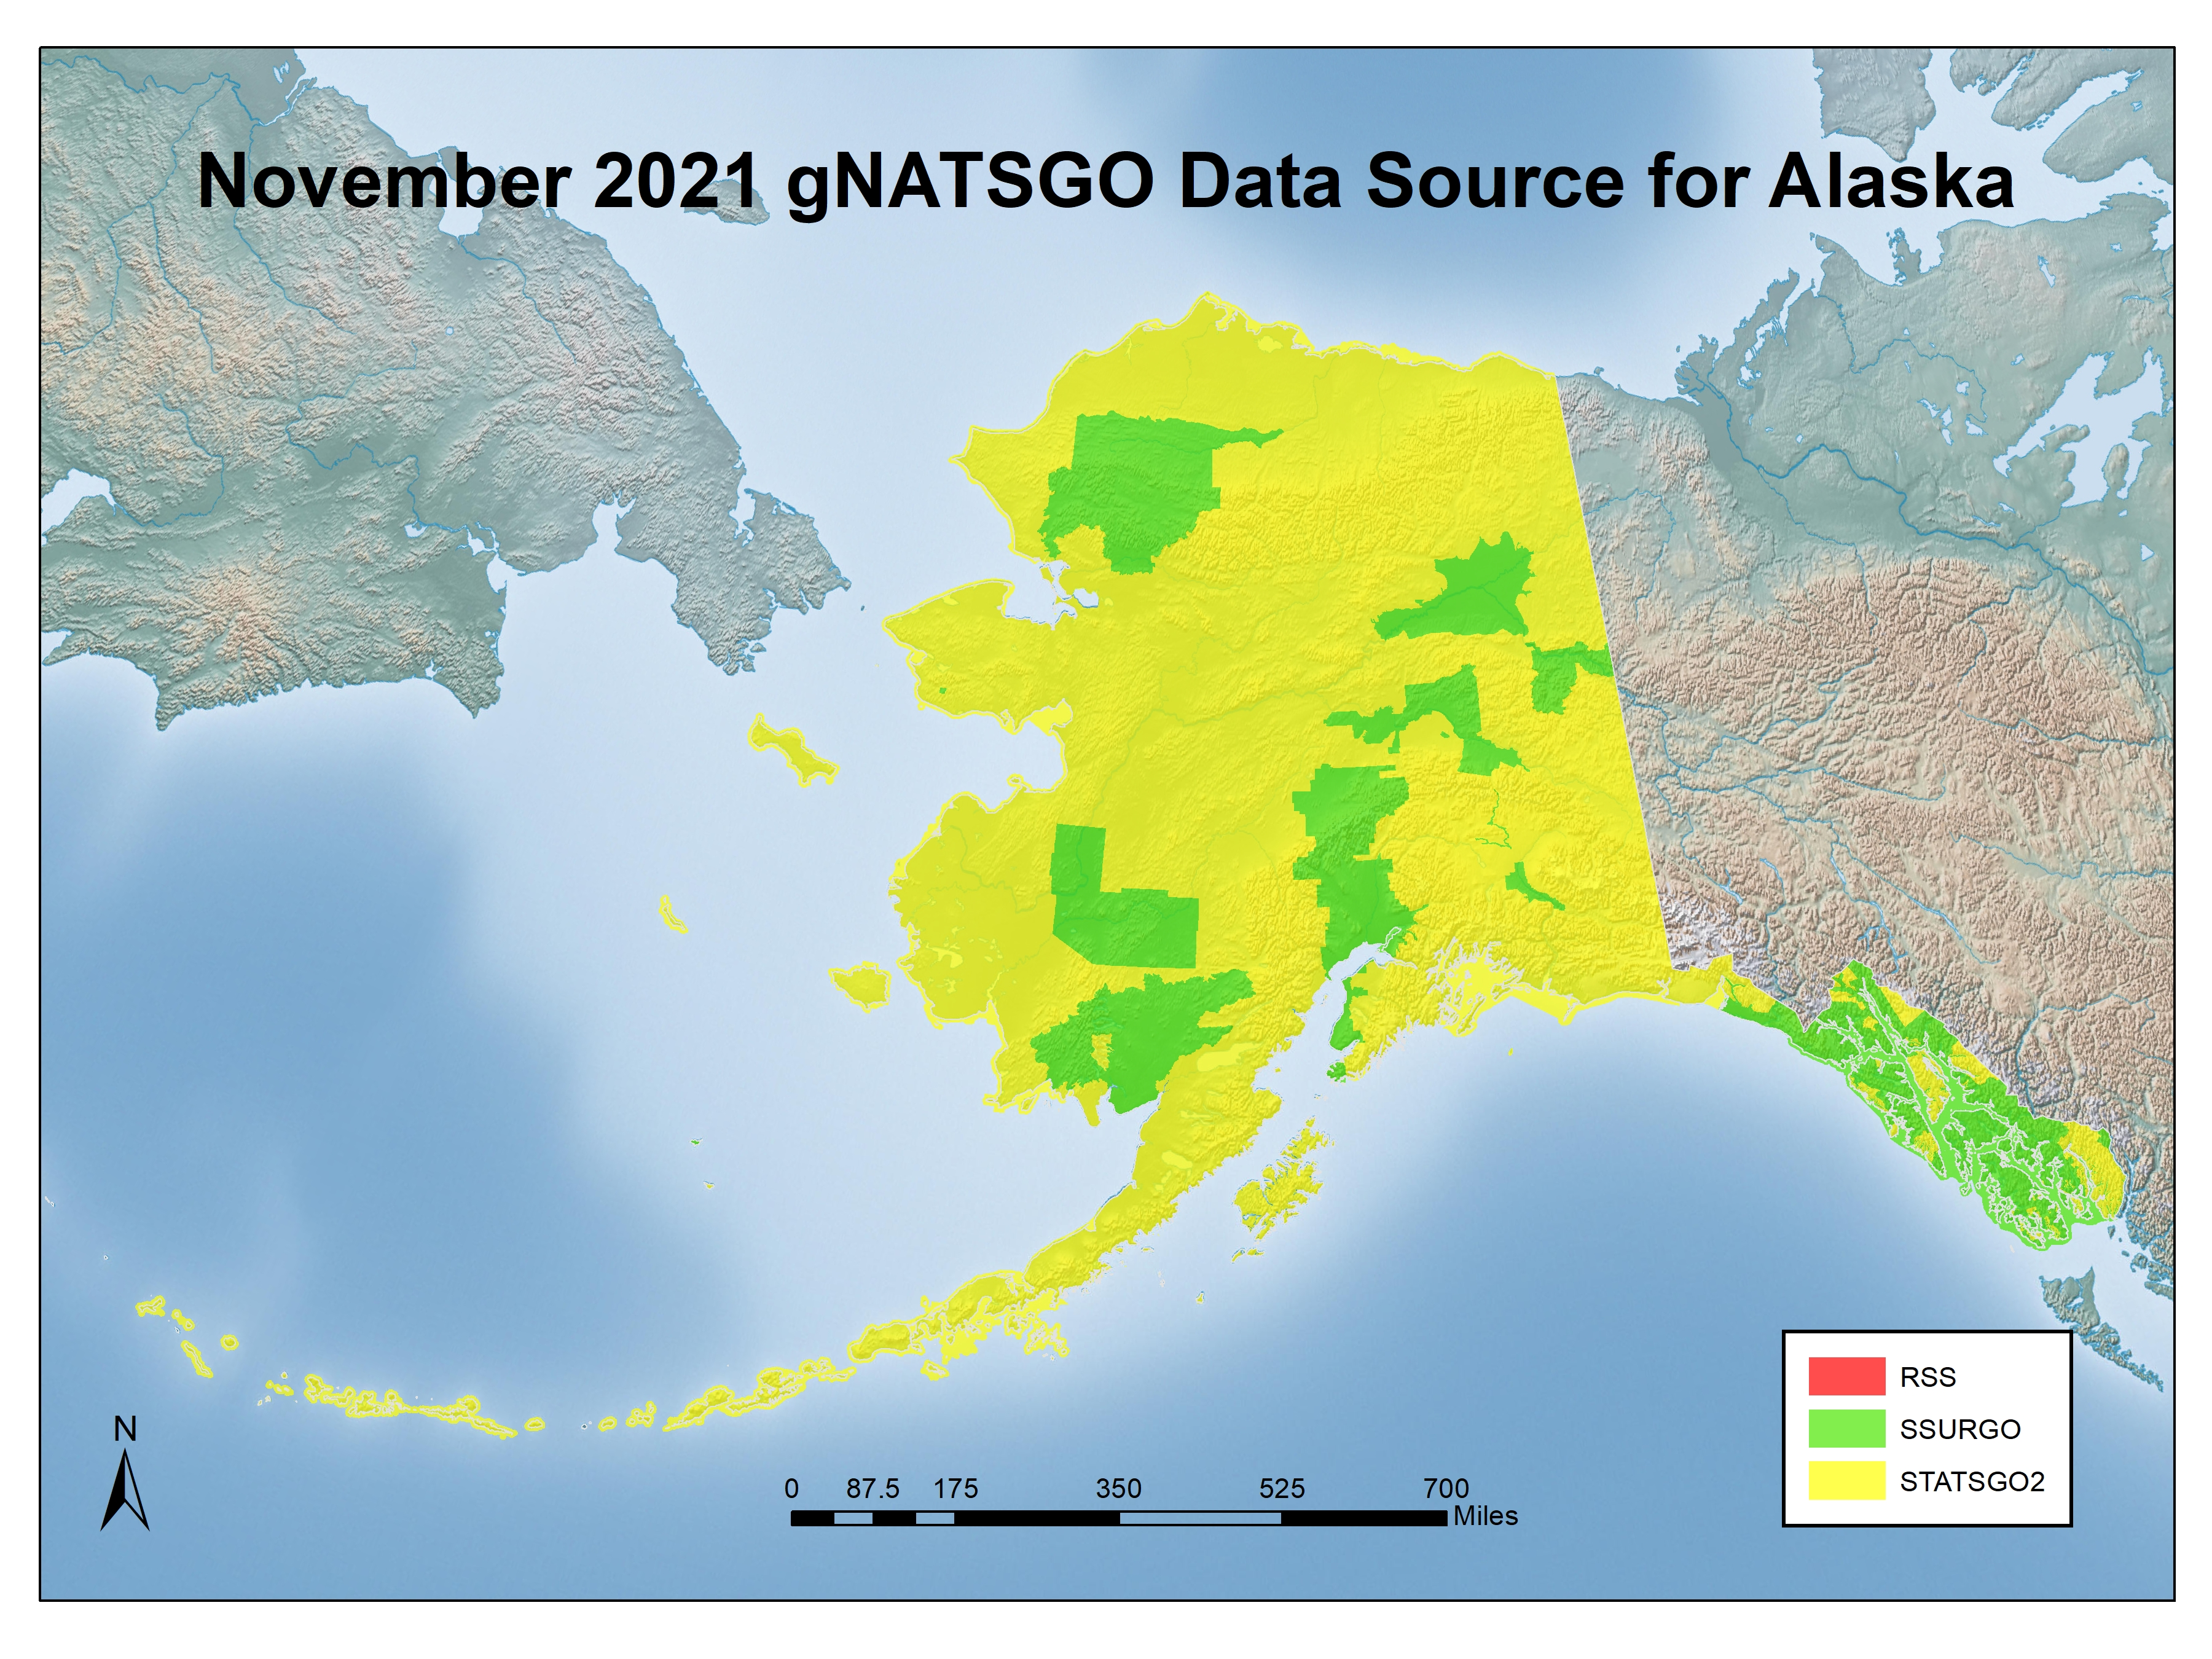 Figure 2. Source of soils information in the 2019 gNATSGO database in the State of Alaska.